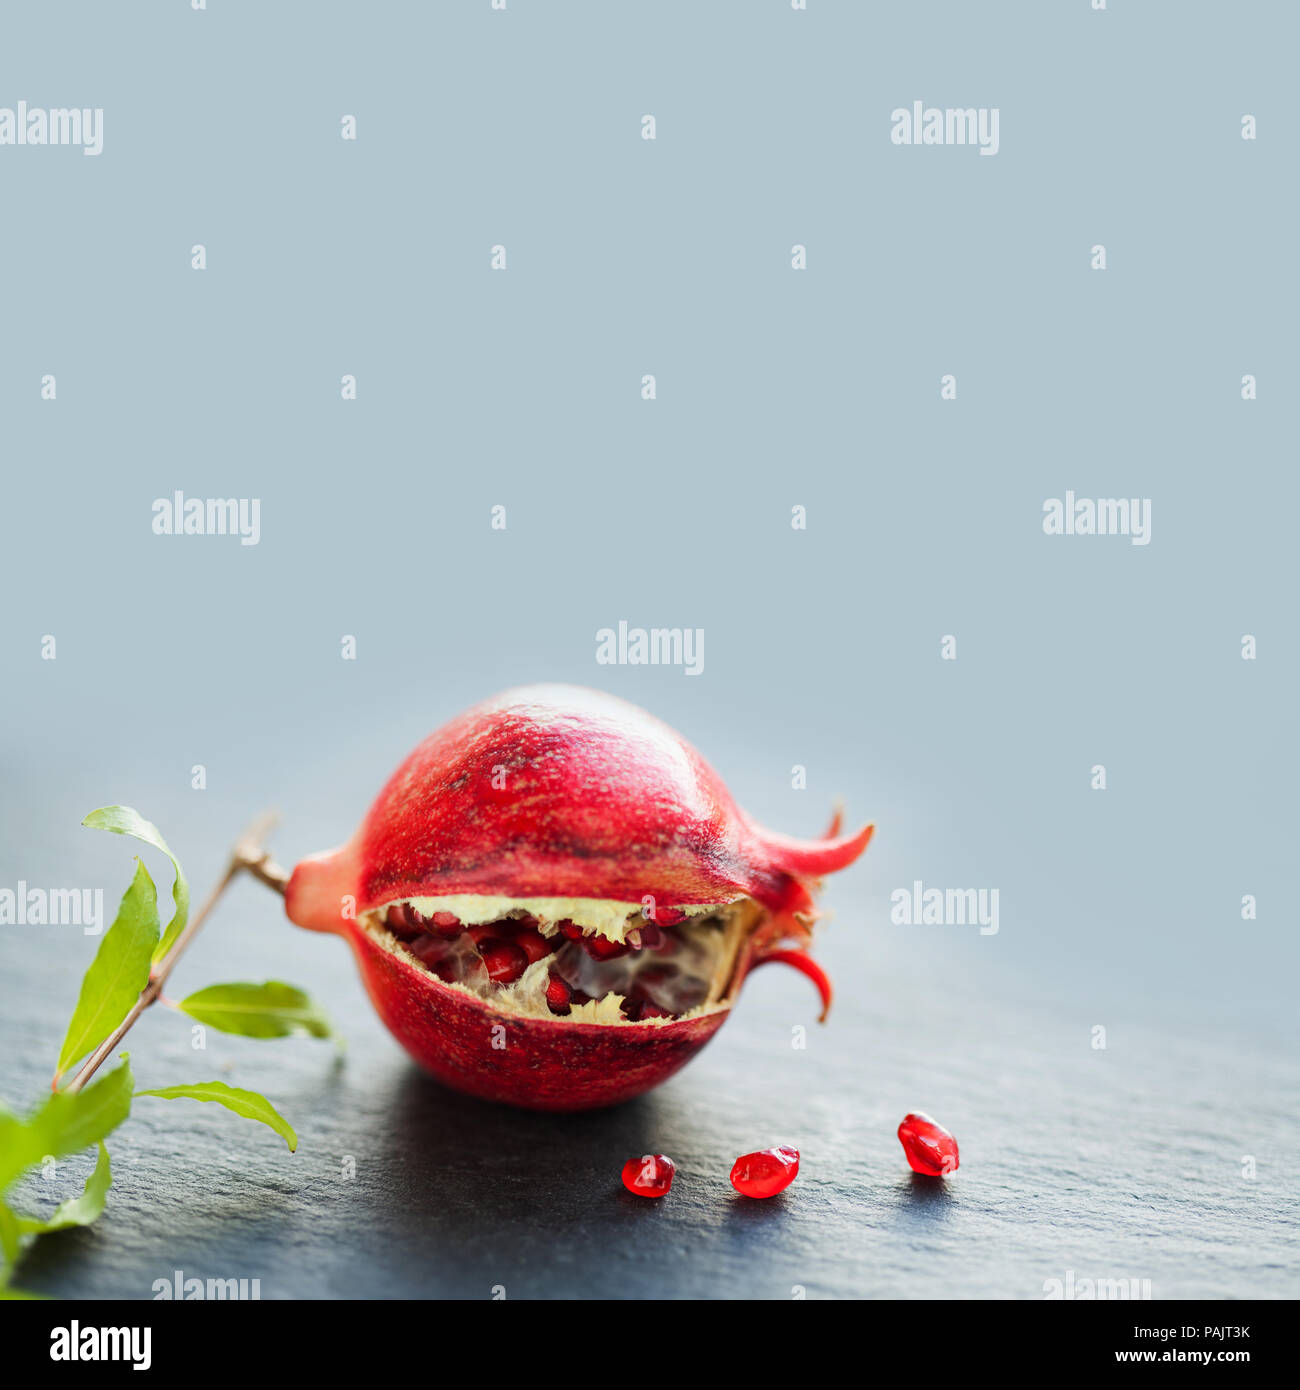 Ripe red fruit pomegranate with seeds on black stone and gray background. close-up photo. copy space - Stock Image